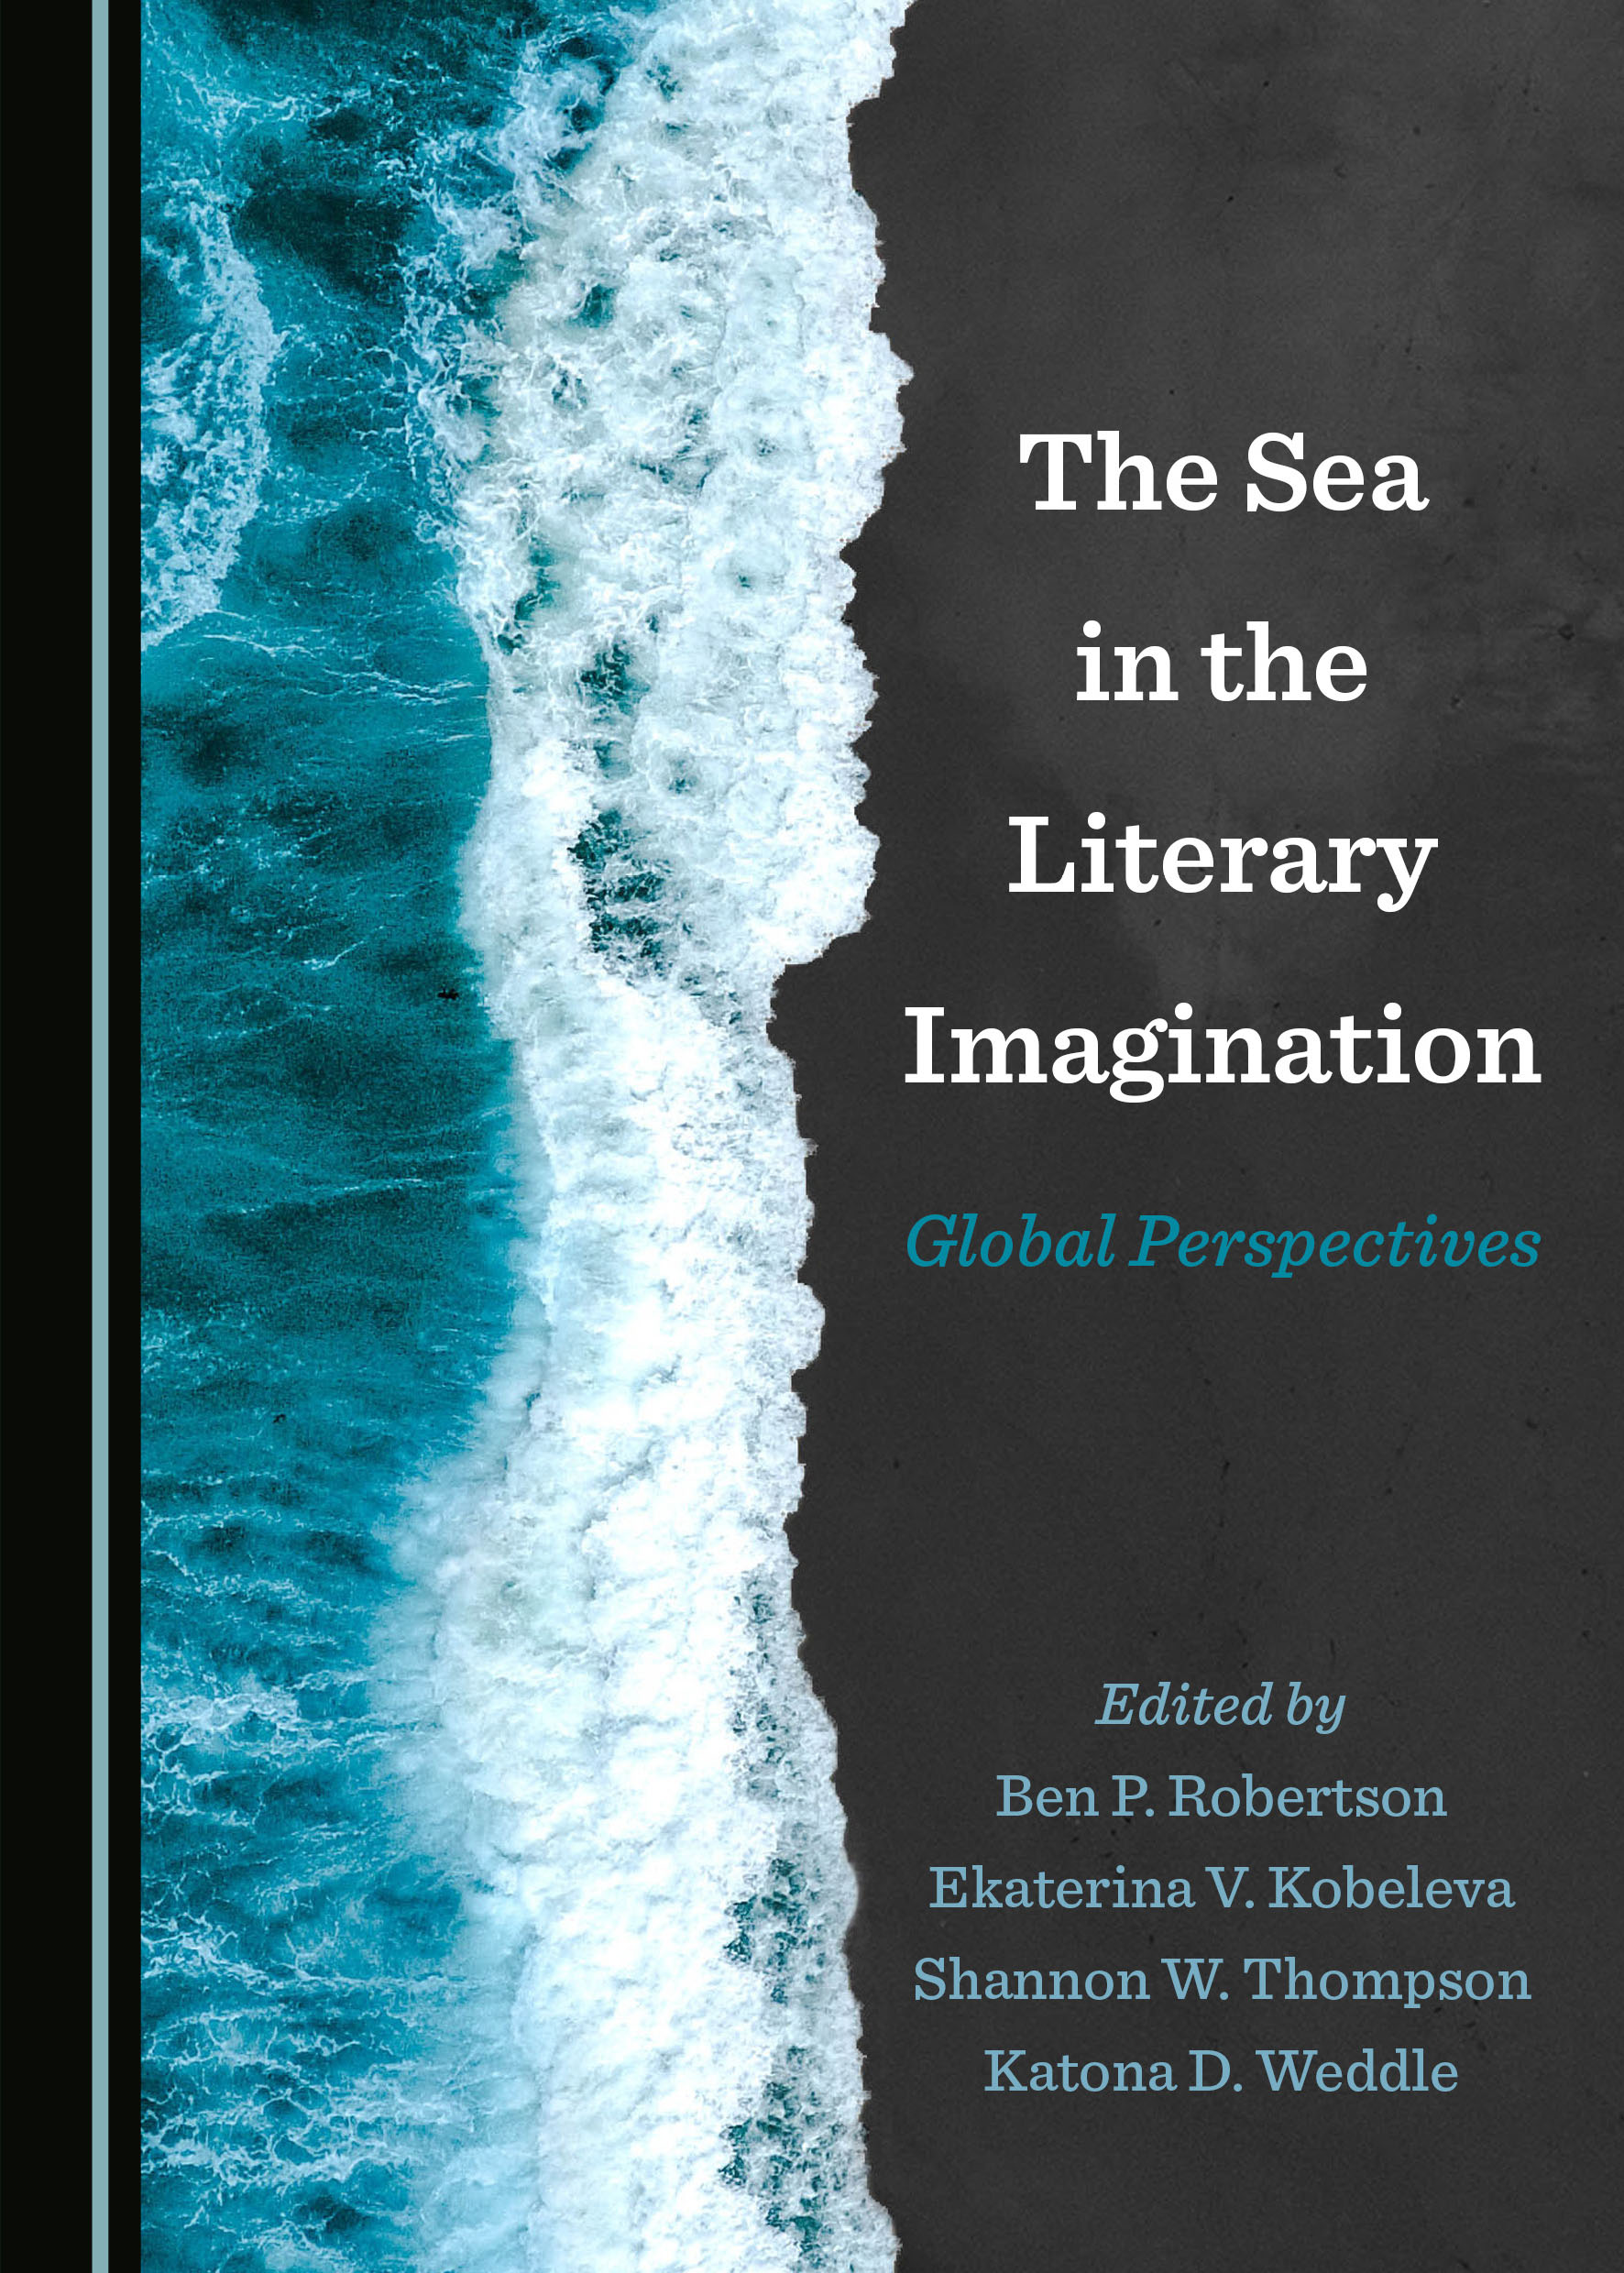 The Sea in the Literary Imagination: Global Perspectives